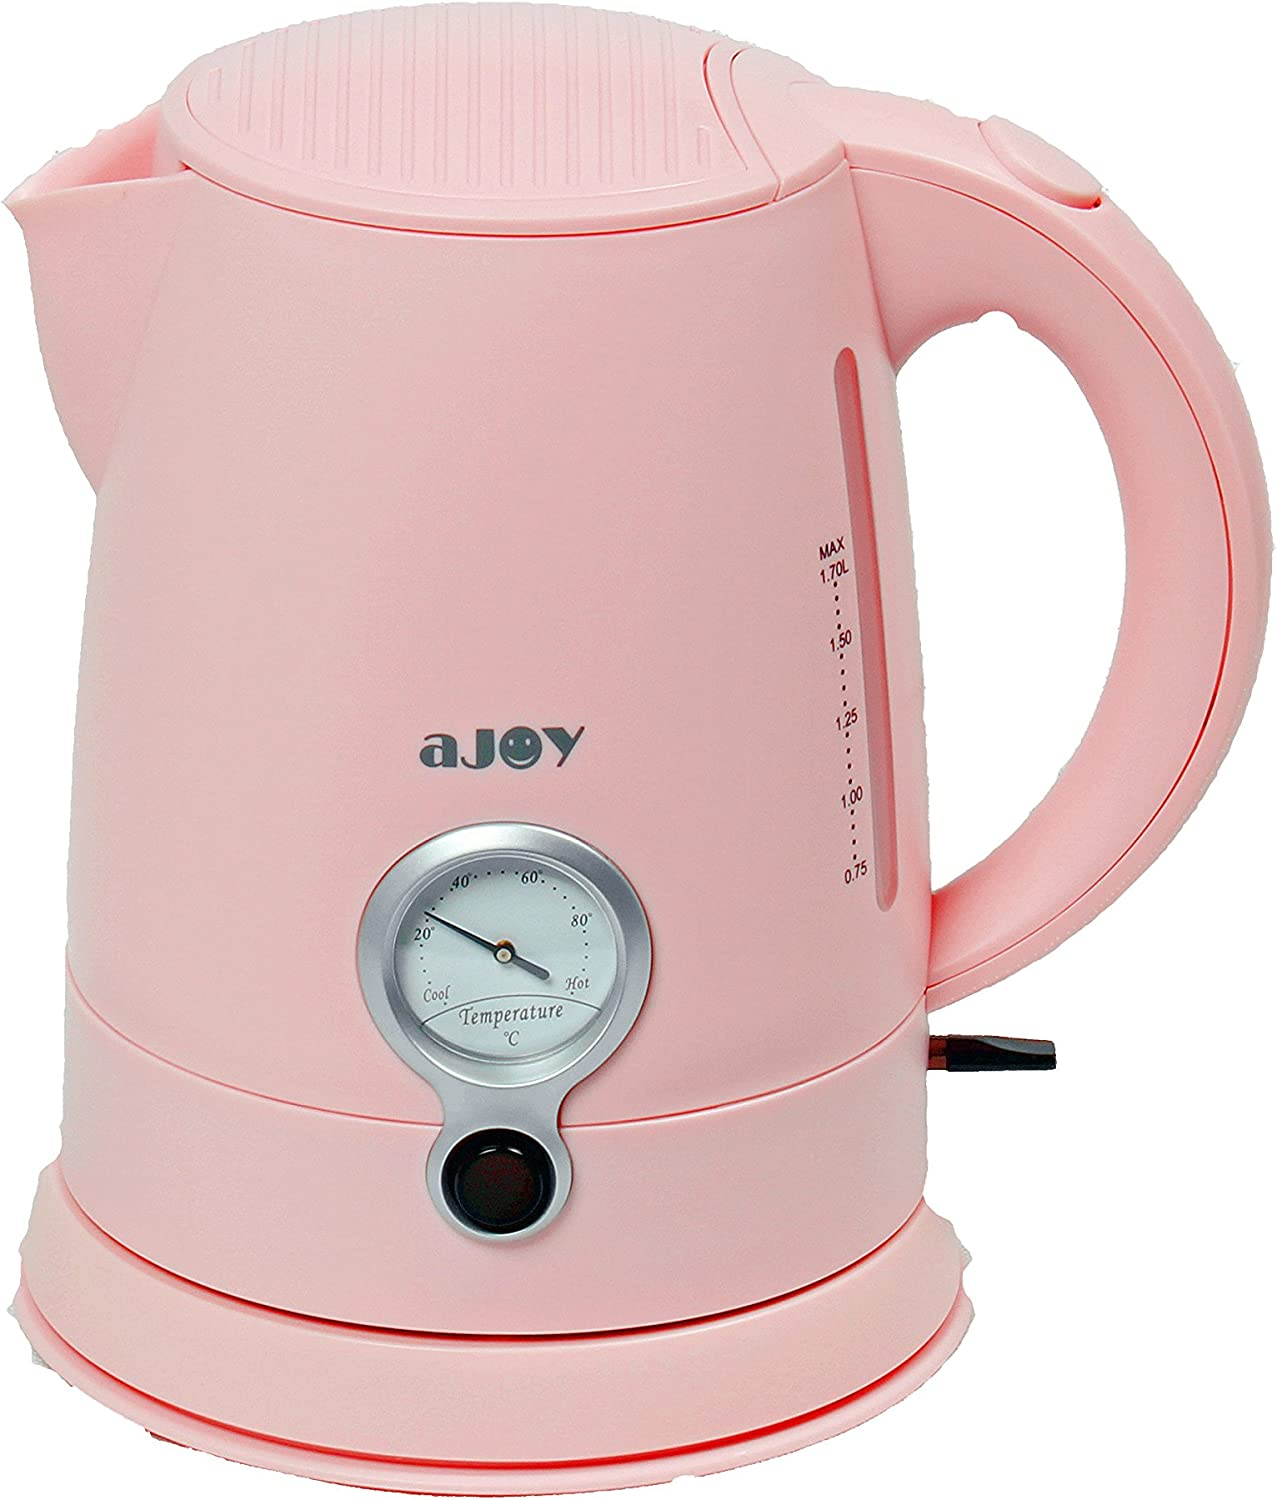 aJOY Professional Designer Series 1.7L Cordless Electric Kettle, BPA Free, 360 Degree Conceal Heating Element, Overheat Protection Control Pink